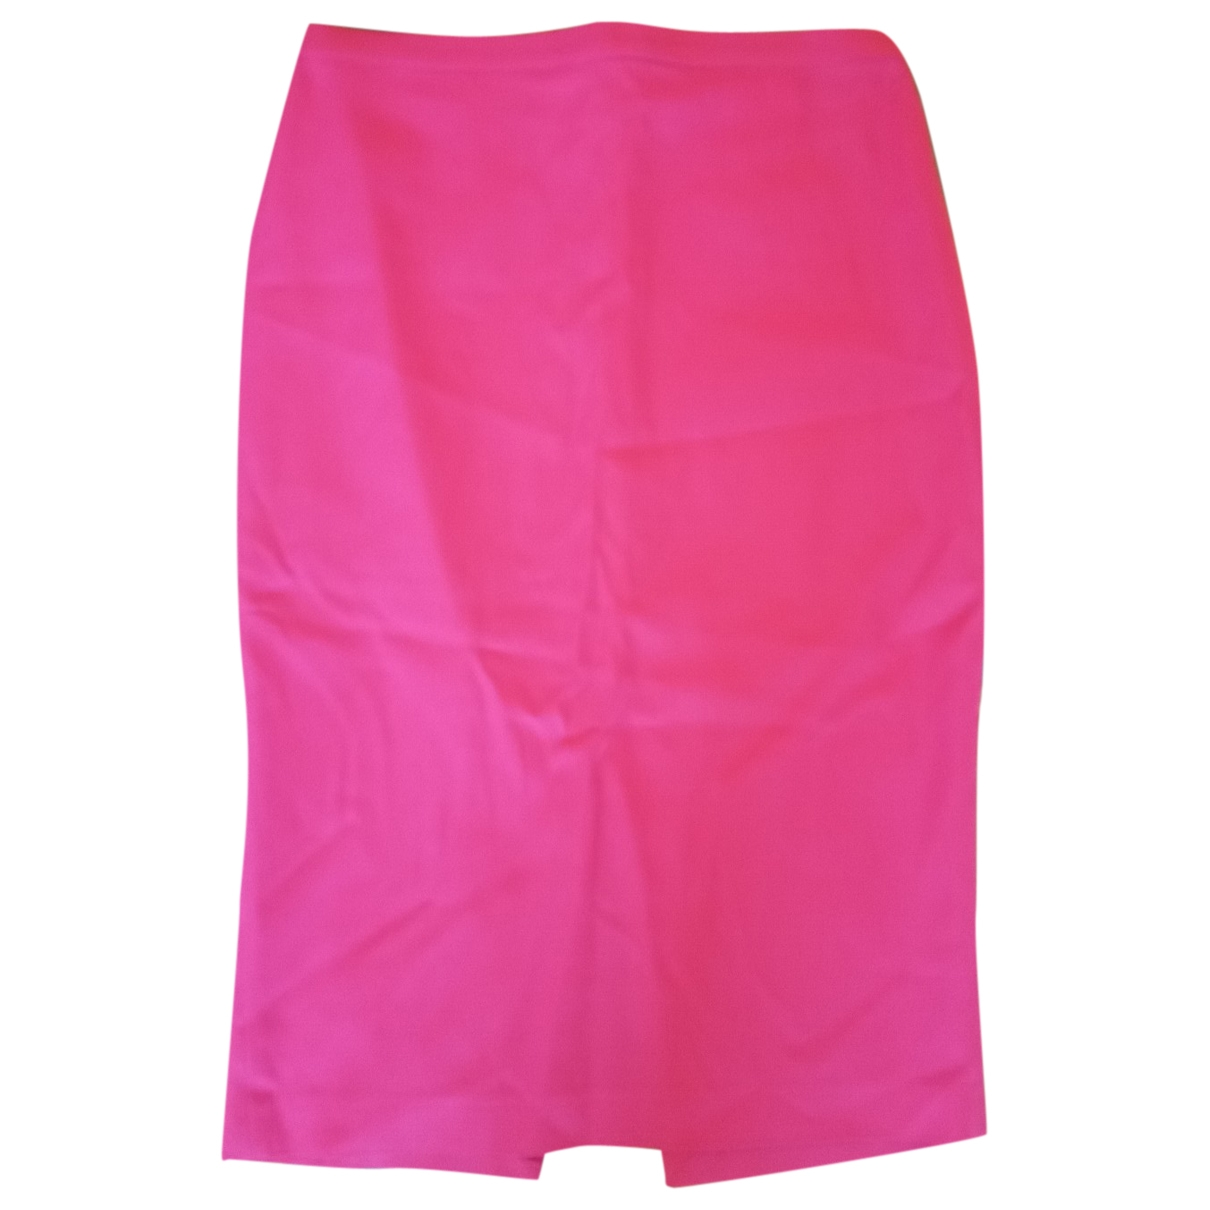 D&g \N Pink skirt for Women 42 IT